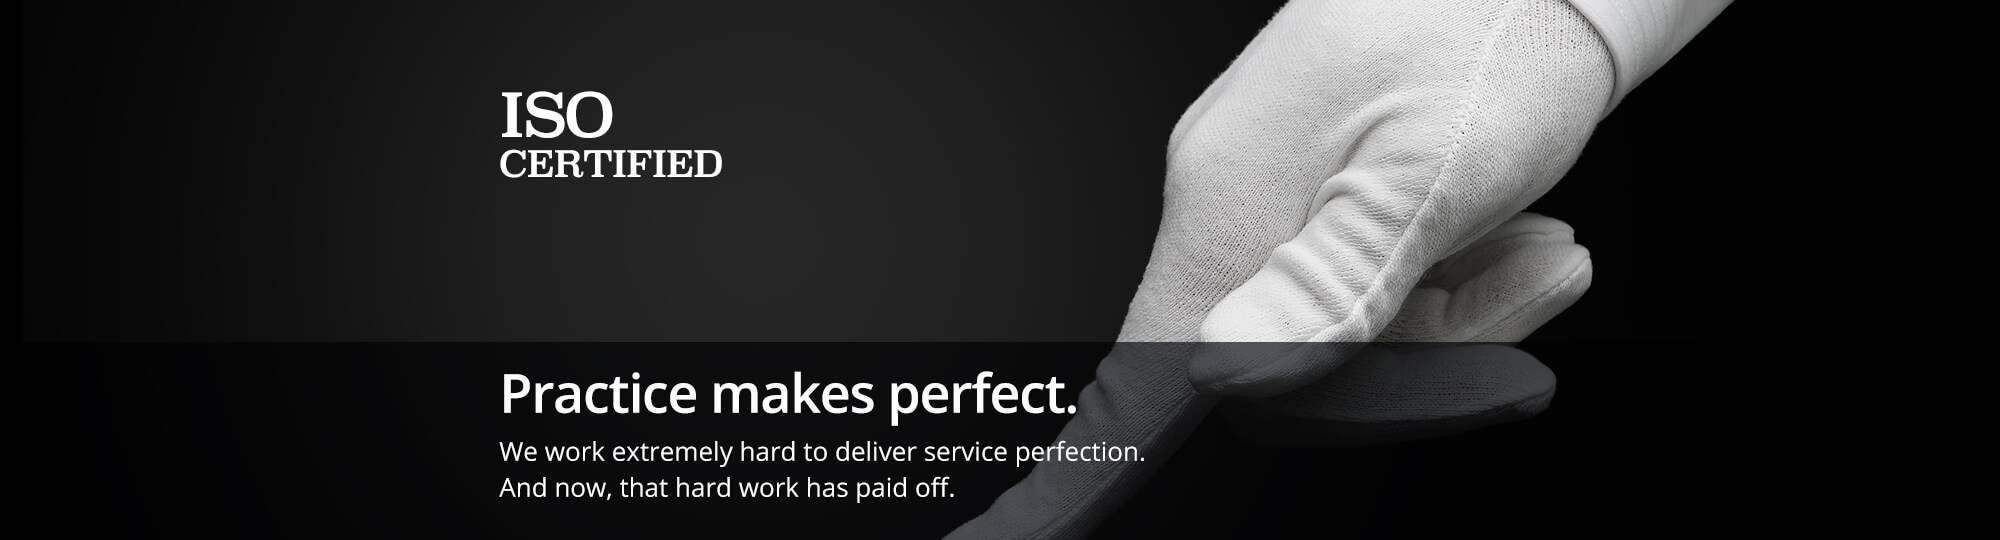 Practice makes perfect. We work extremely hard to deliver service perfection. And now, that hard work has paid off.